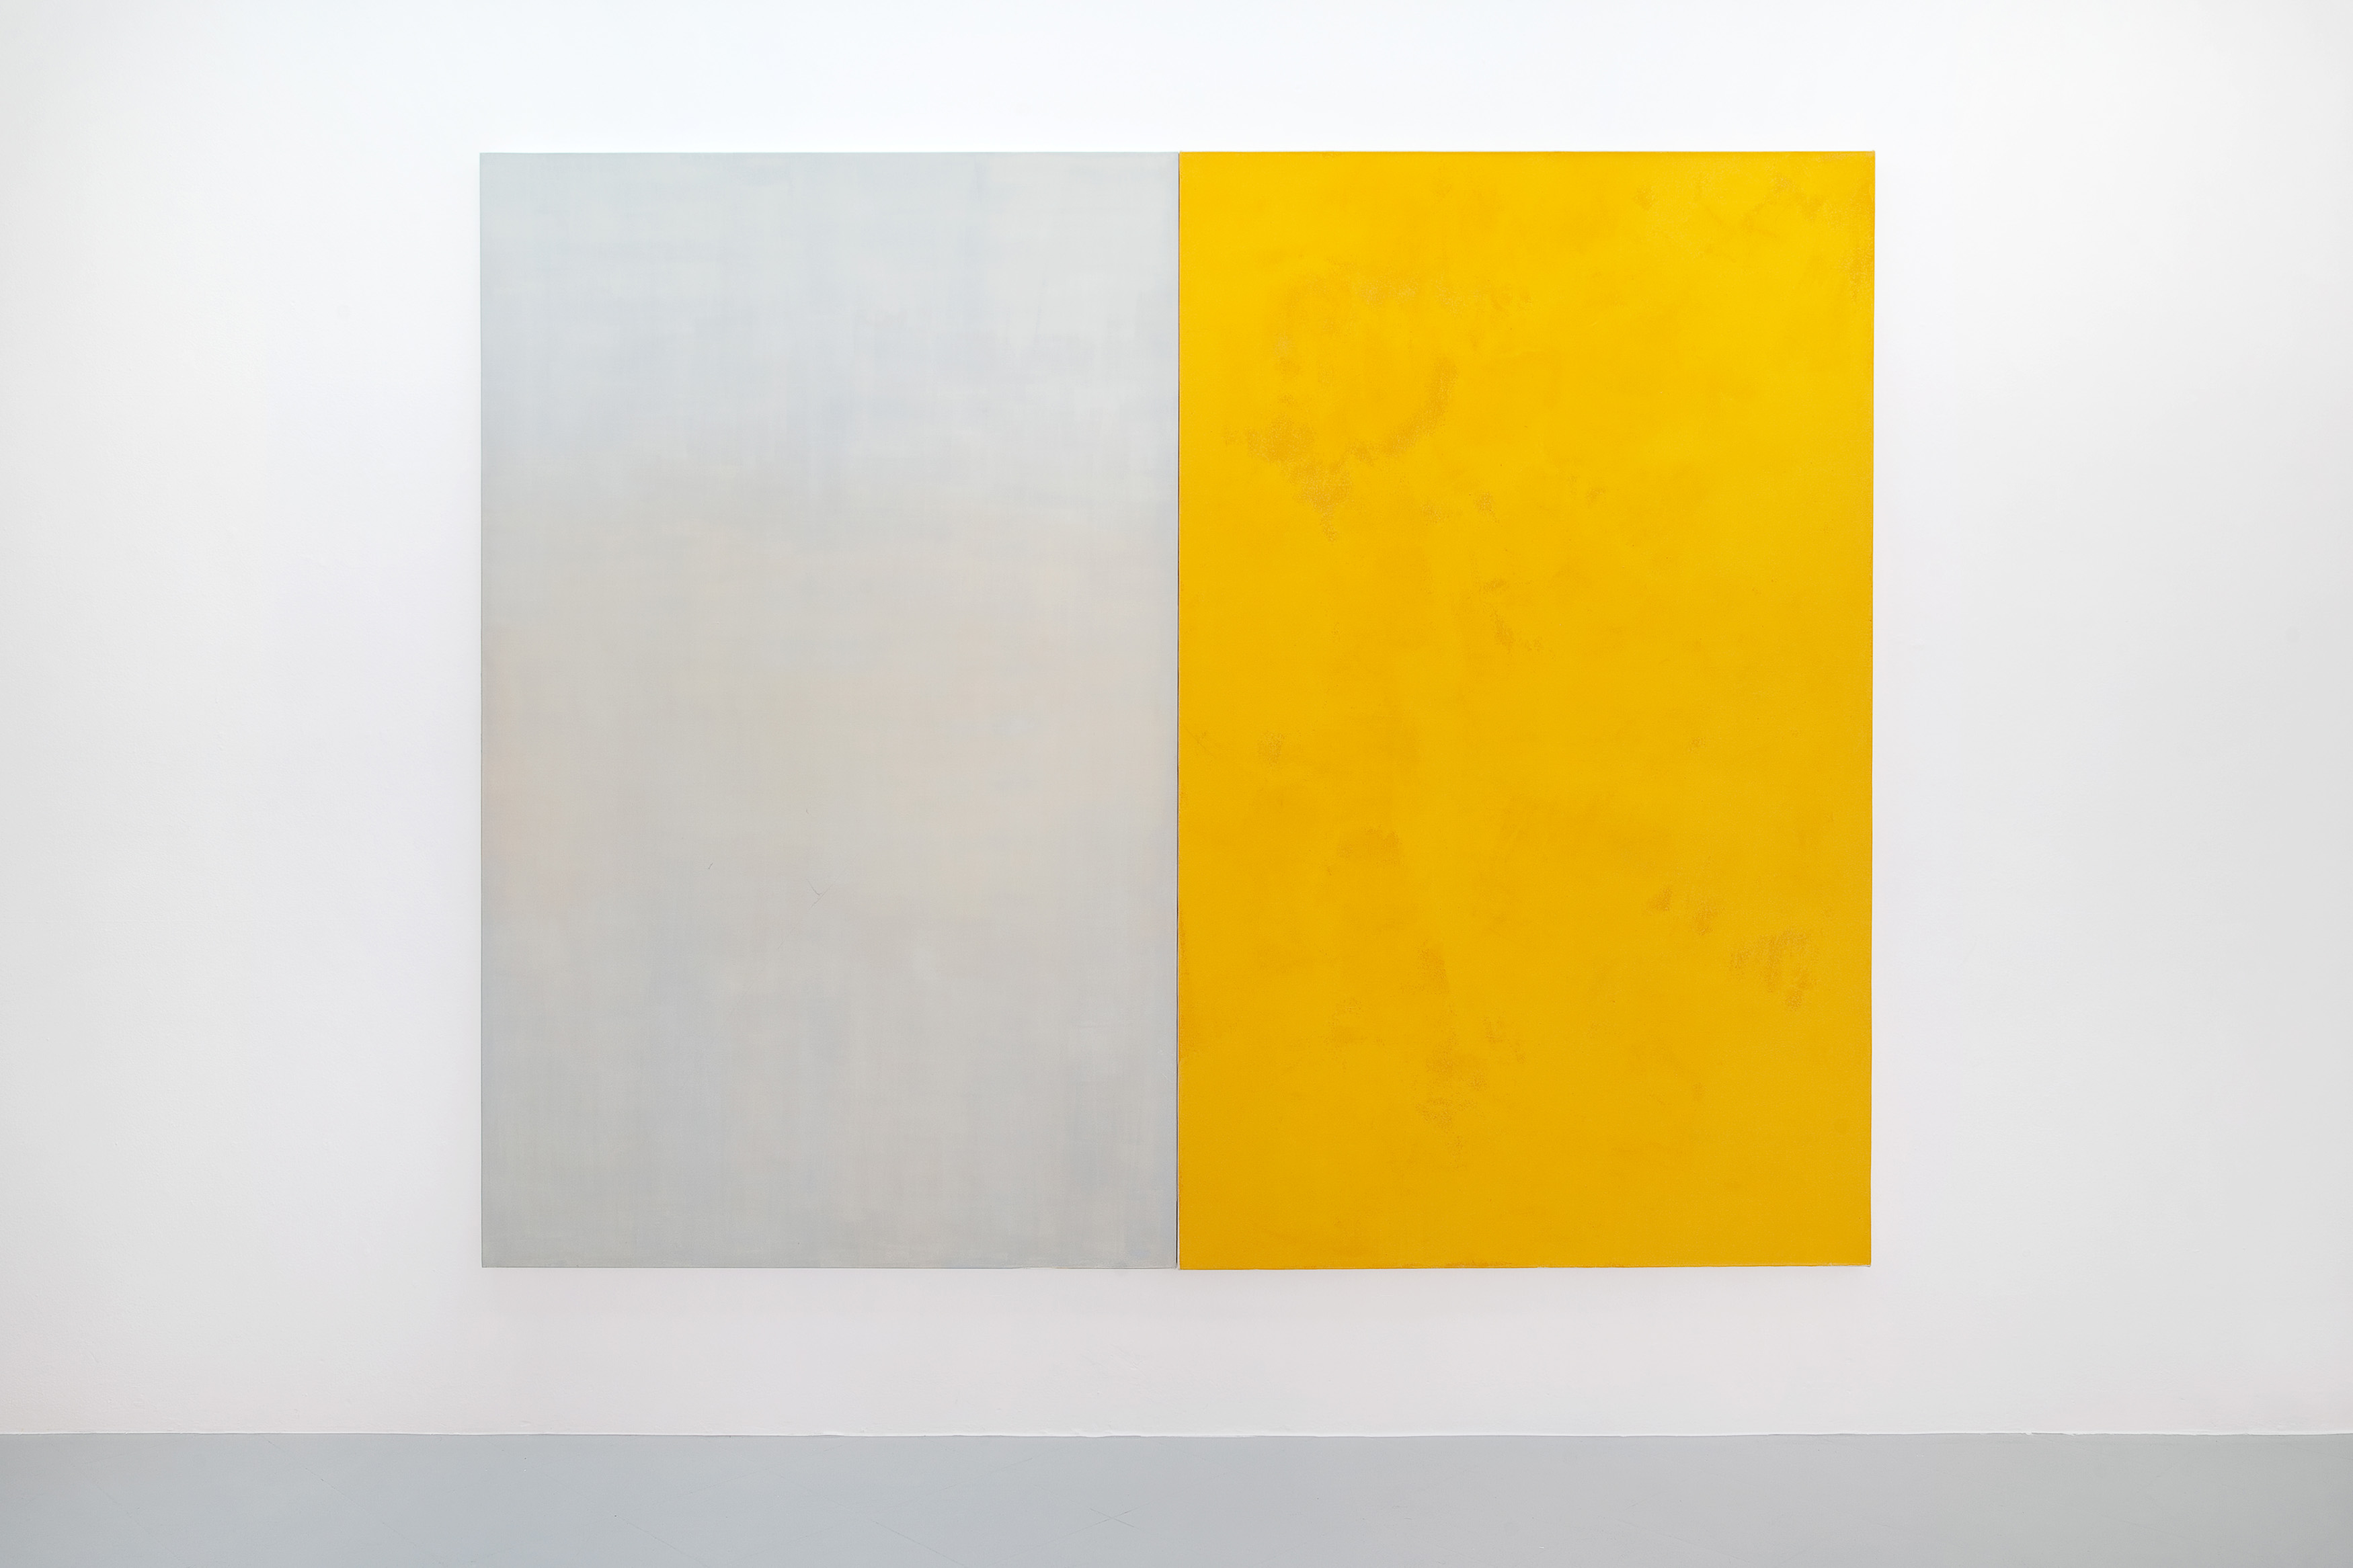 10 - Adrian Buschmann Vanilla Sky  Campari Orange 2015 oil on canvas dipthic 210x260 cm